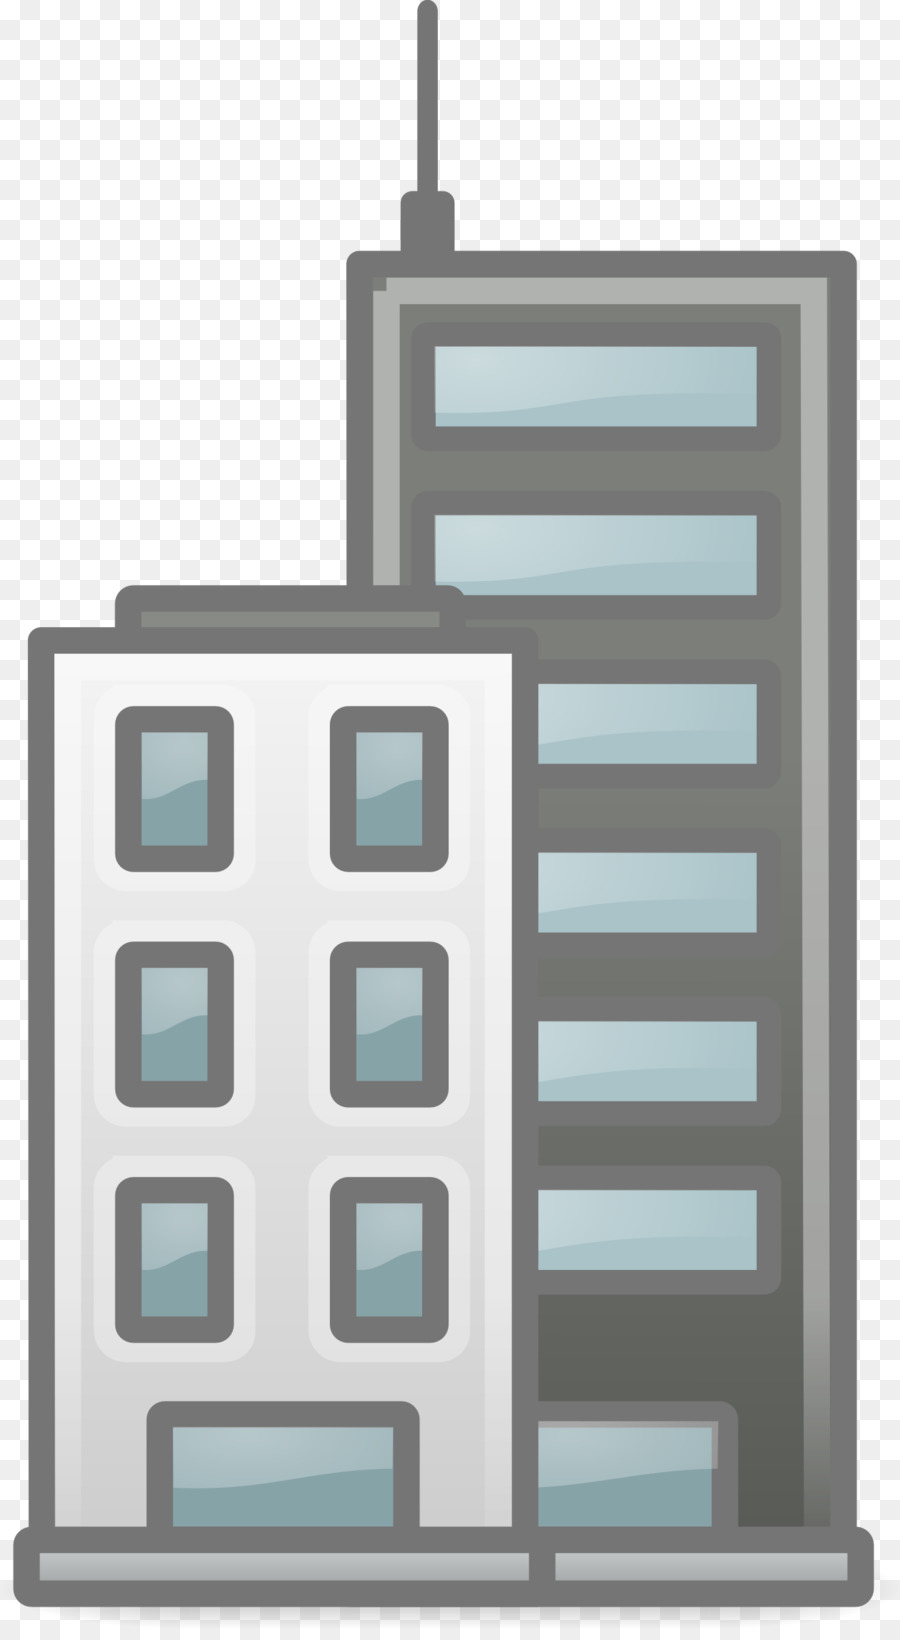 Building Cartoontransparent png image & clipart free download.